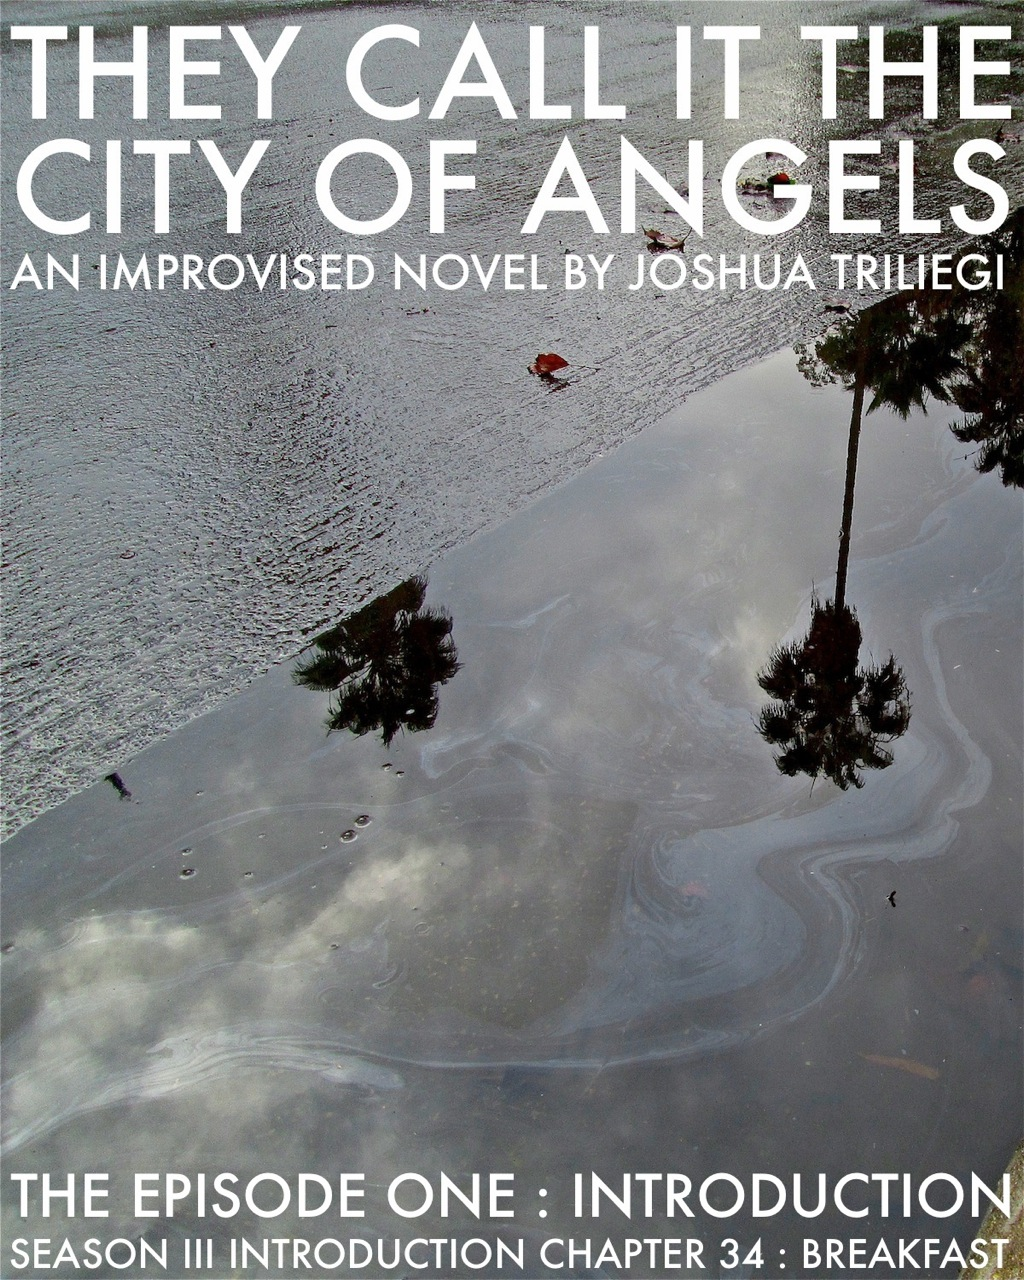 READ EPISODE ONE: THEY CALL IT THE CITY OF ANGELS SEASON III